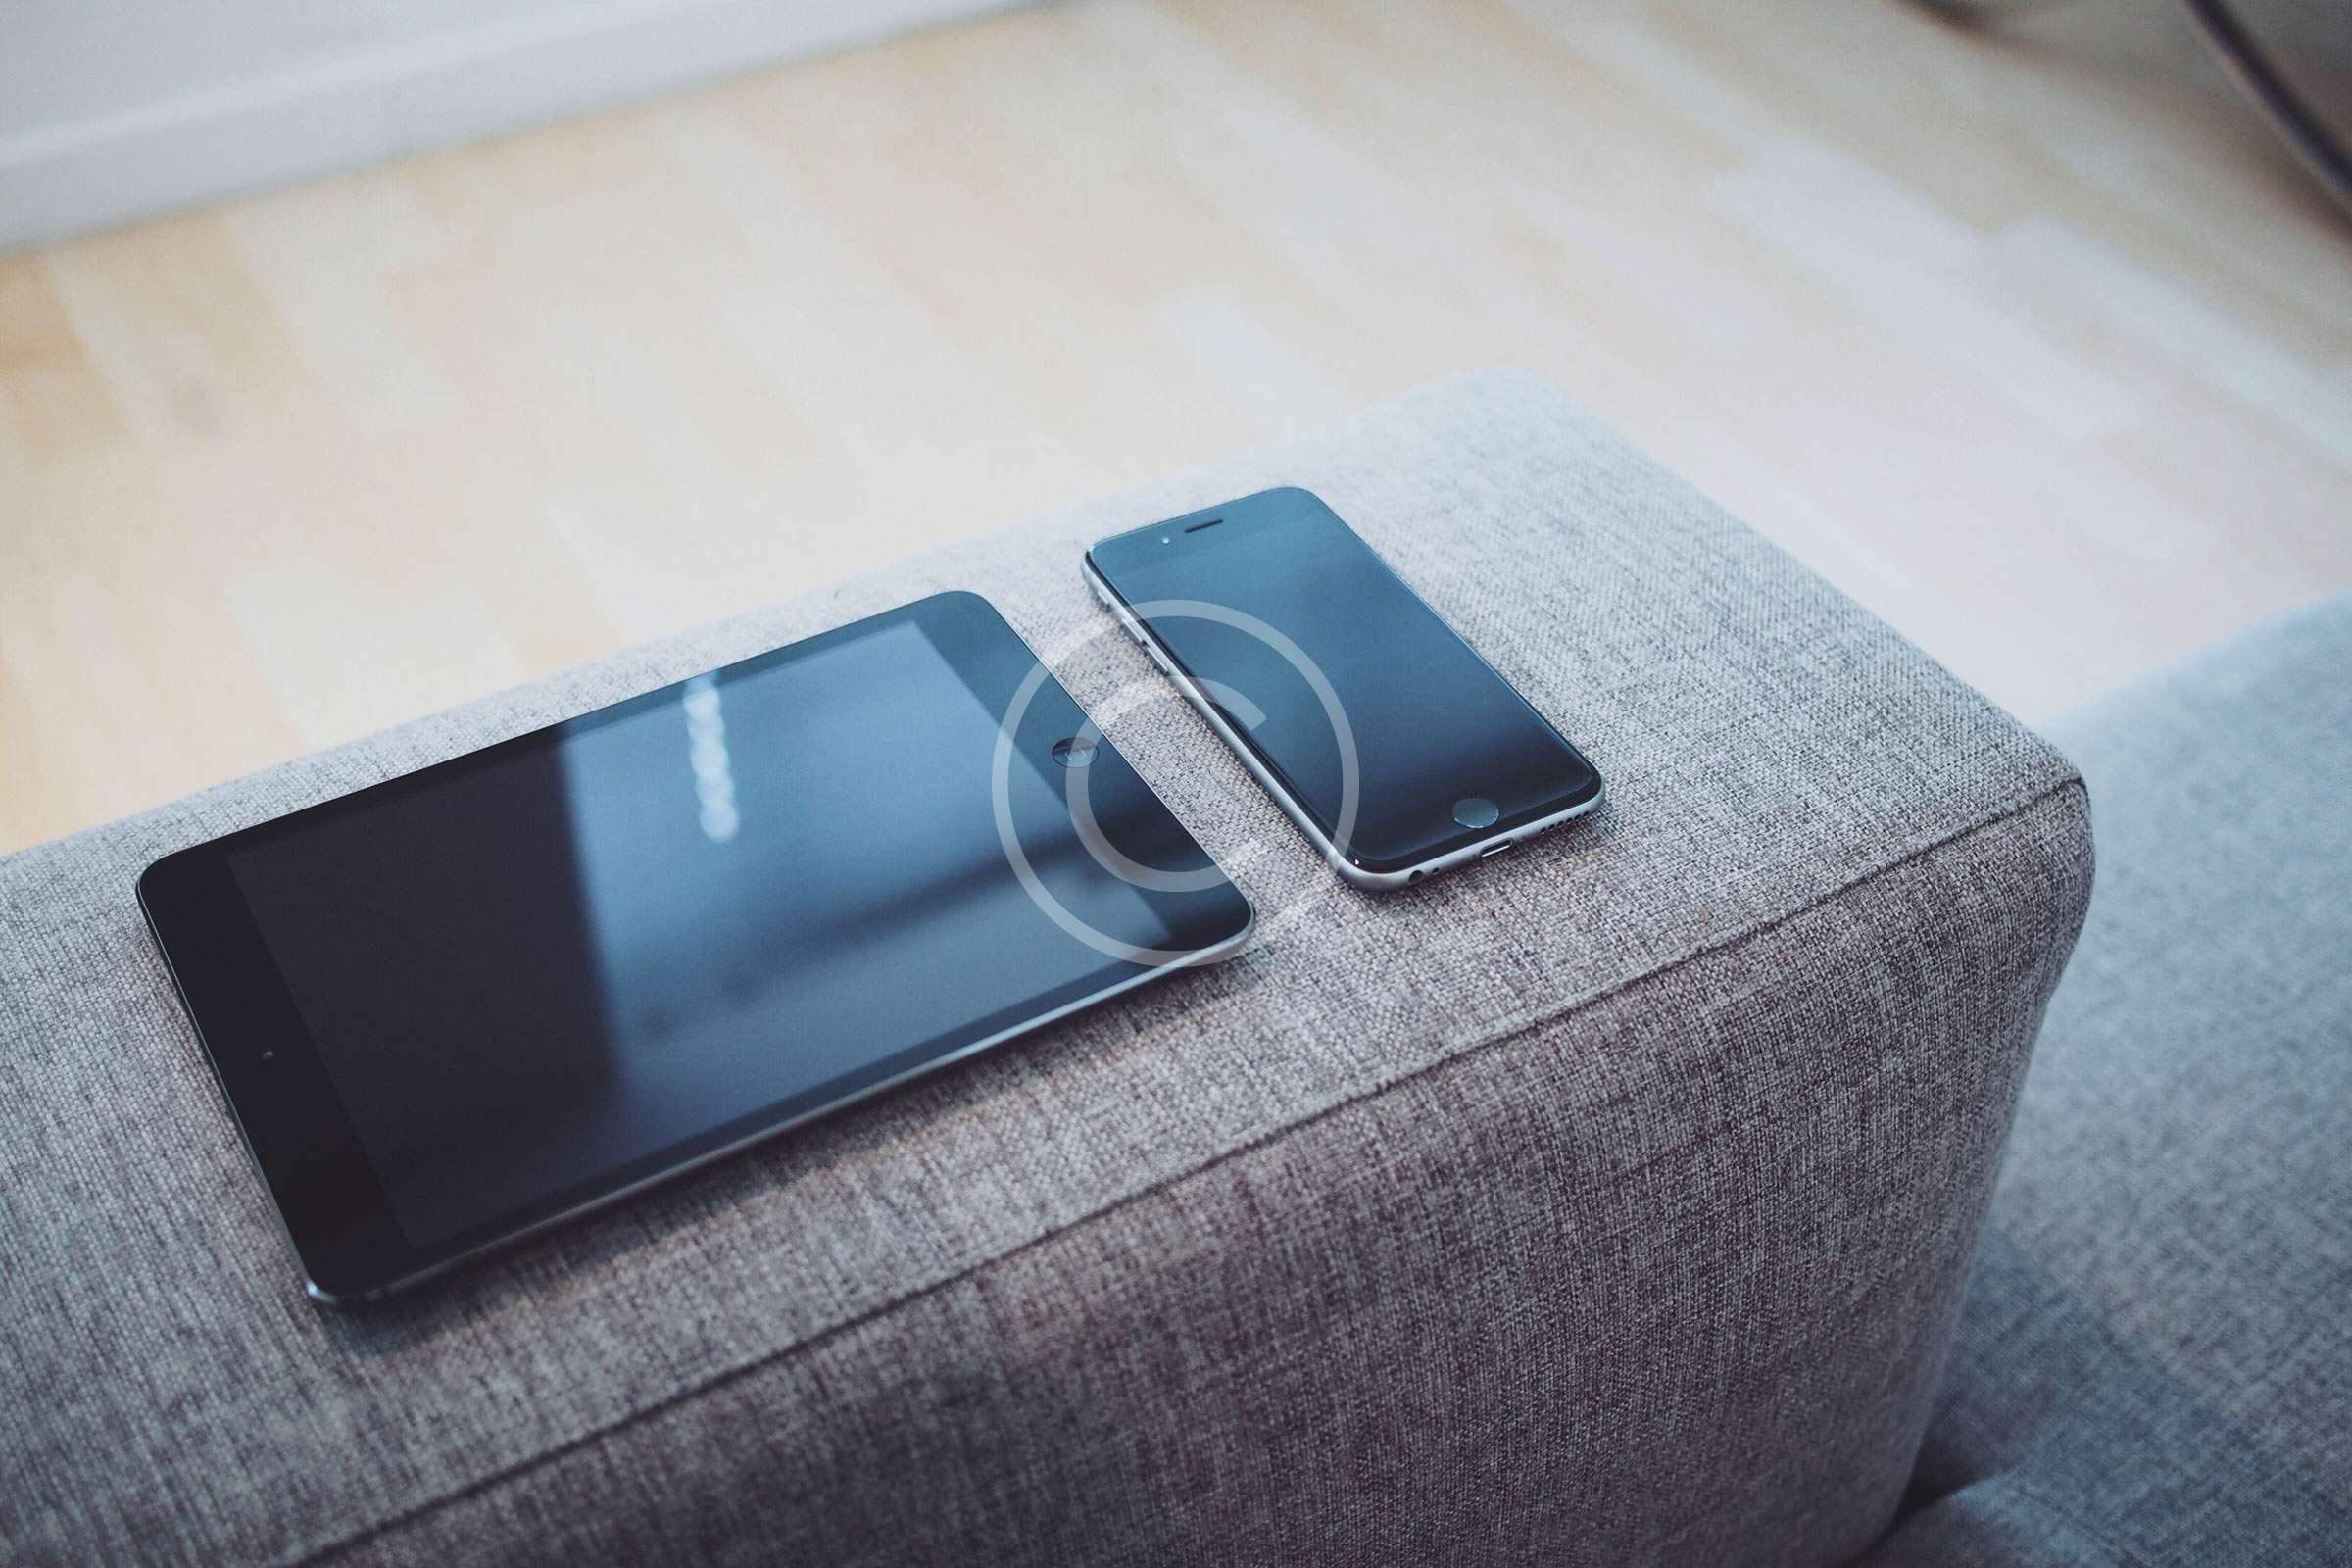 6 Ways To Free Storage On Your Mobile Devices